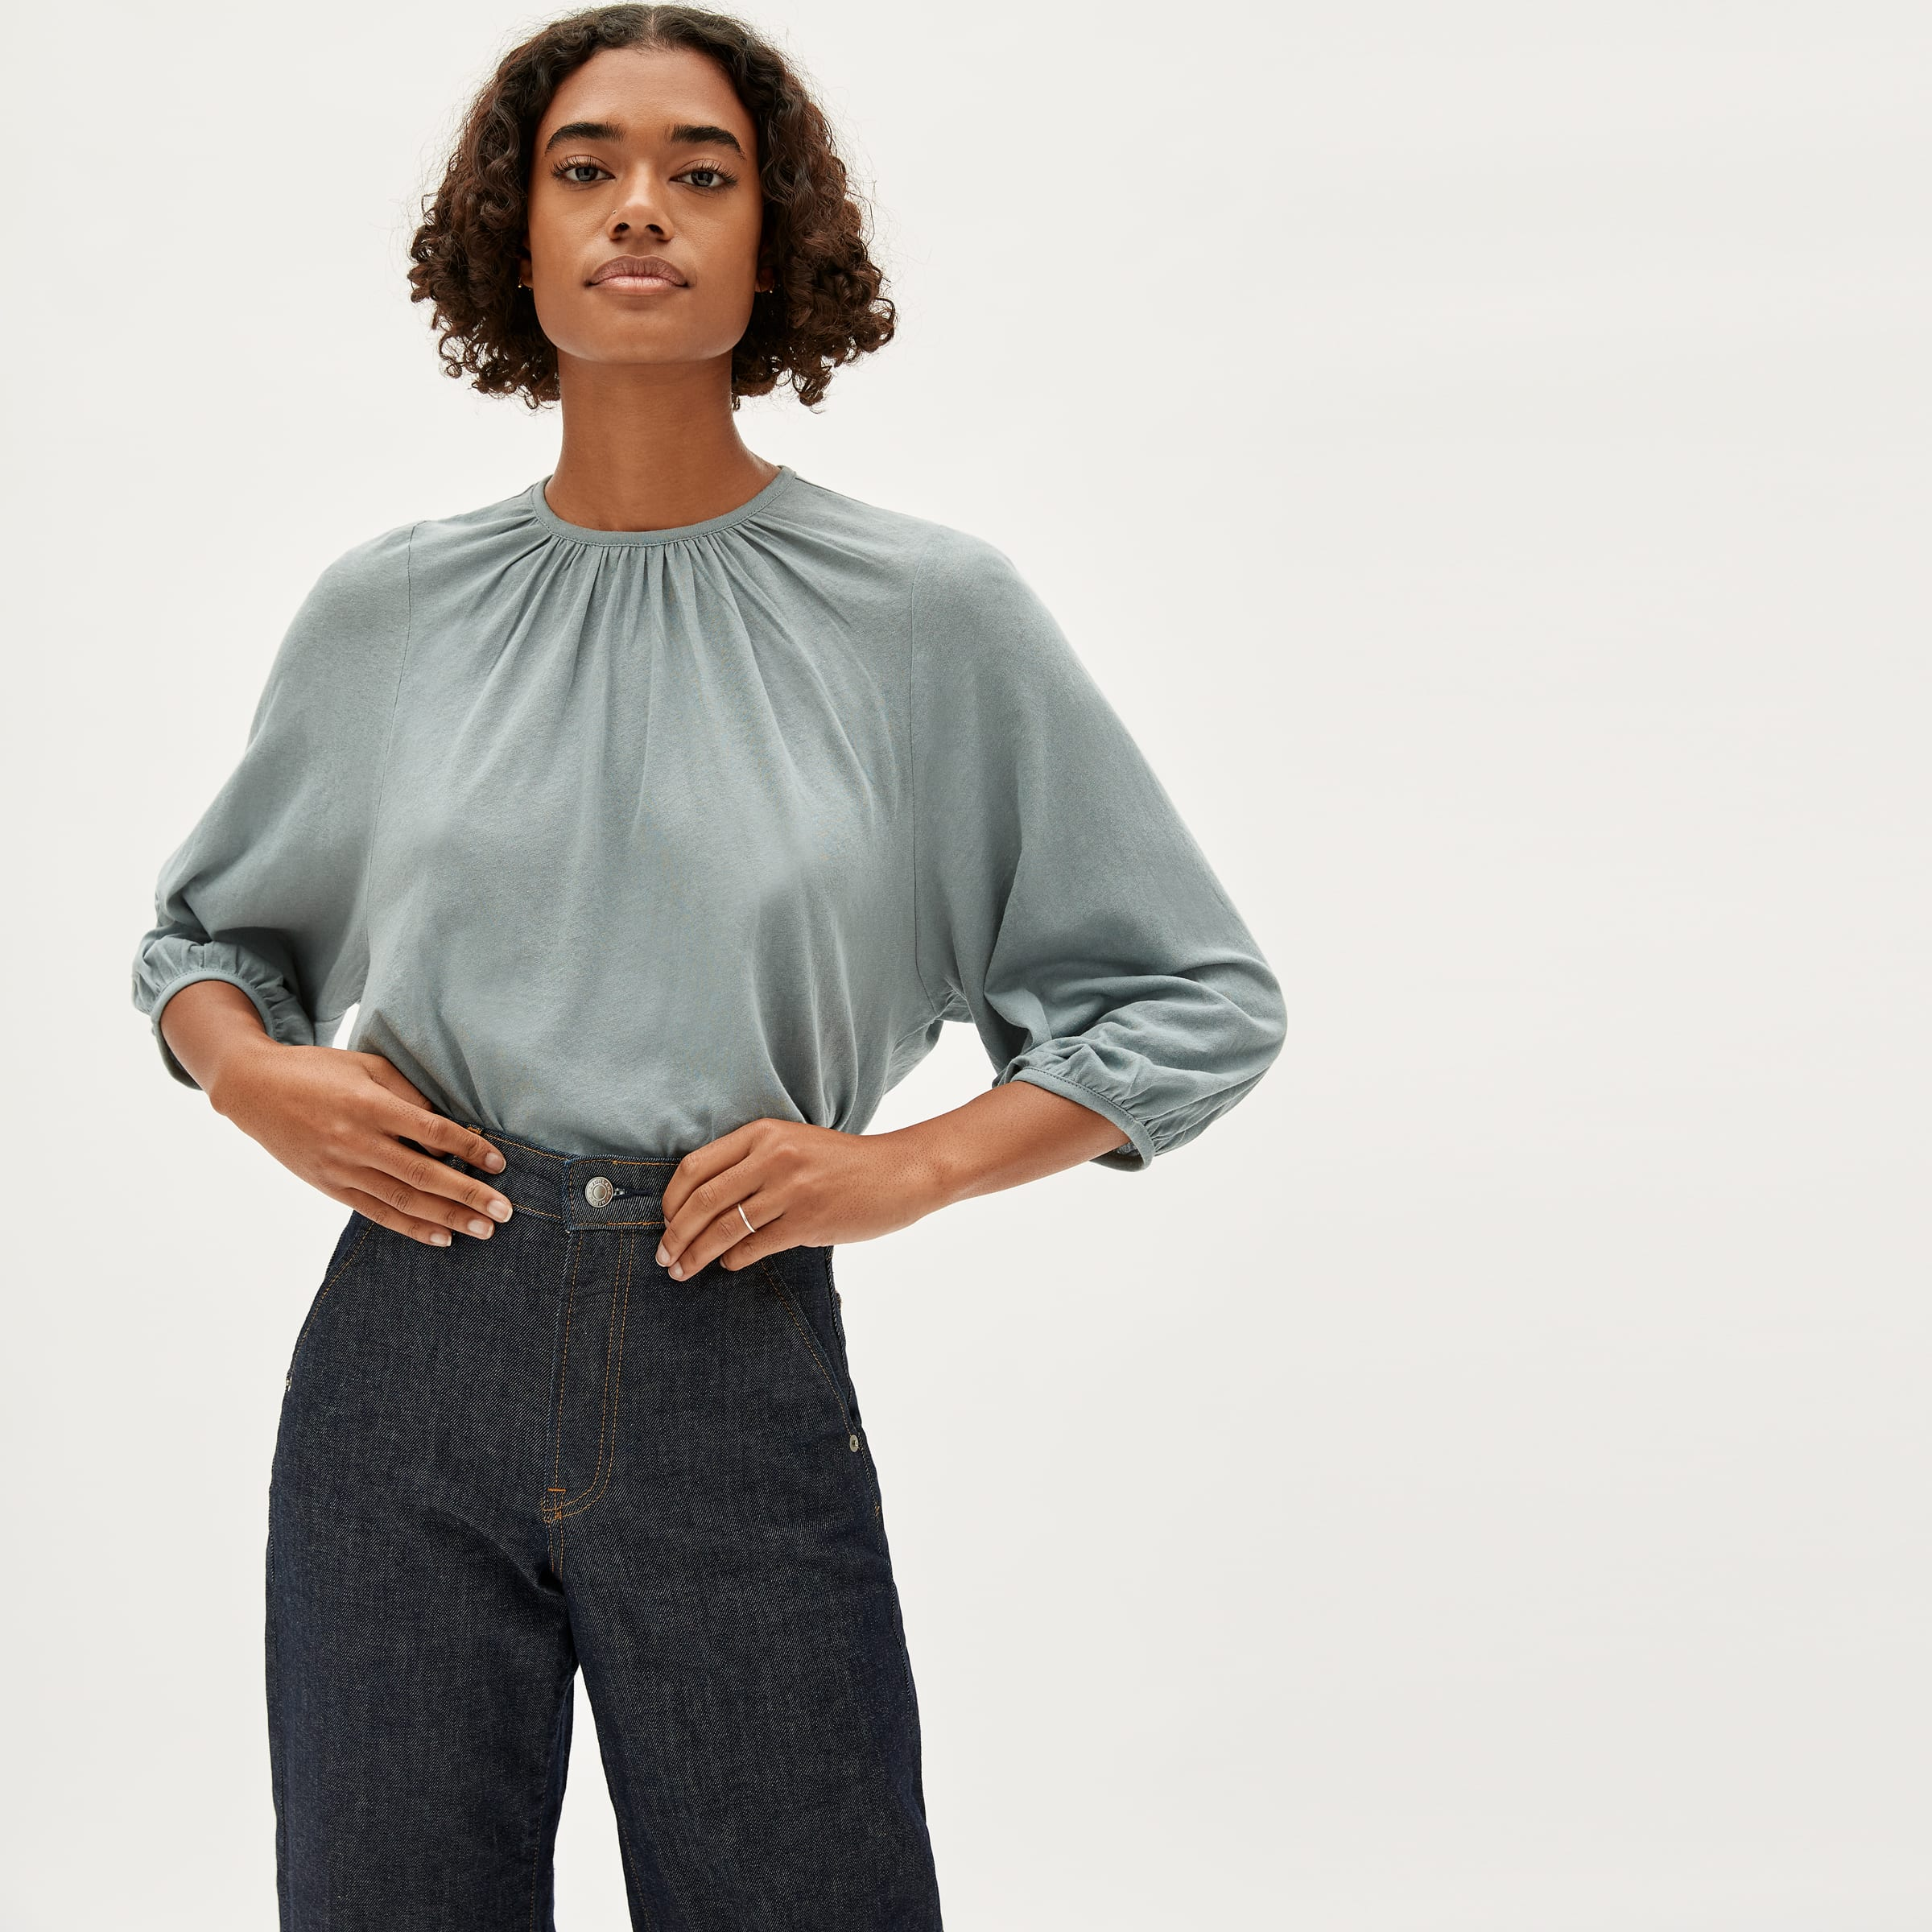 Everlane work from home outfit shirts.